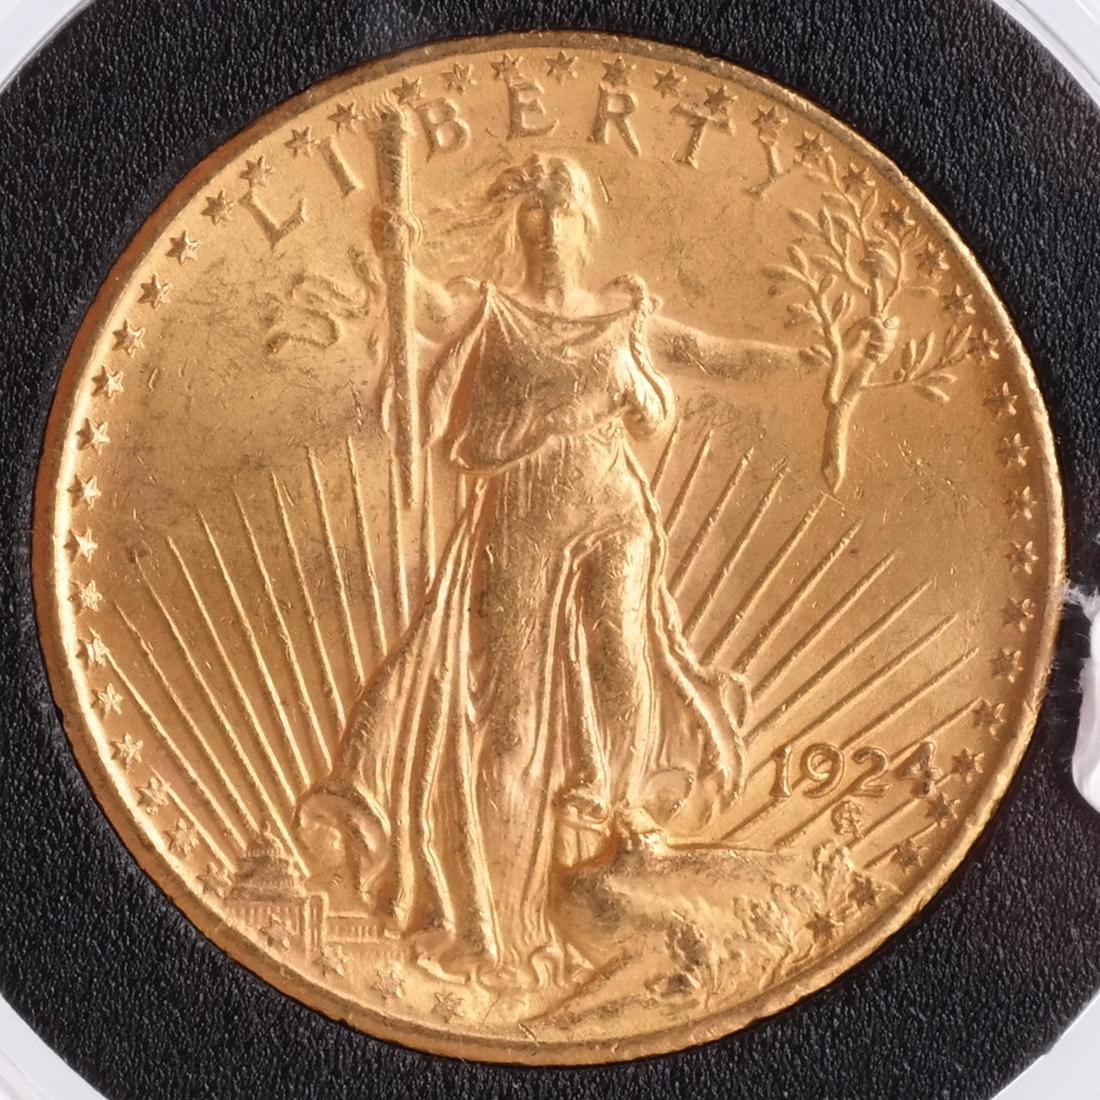 1924 $20 Gold Saint Gaudens, MS 65